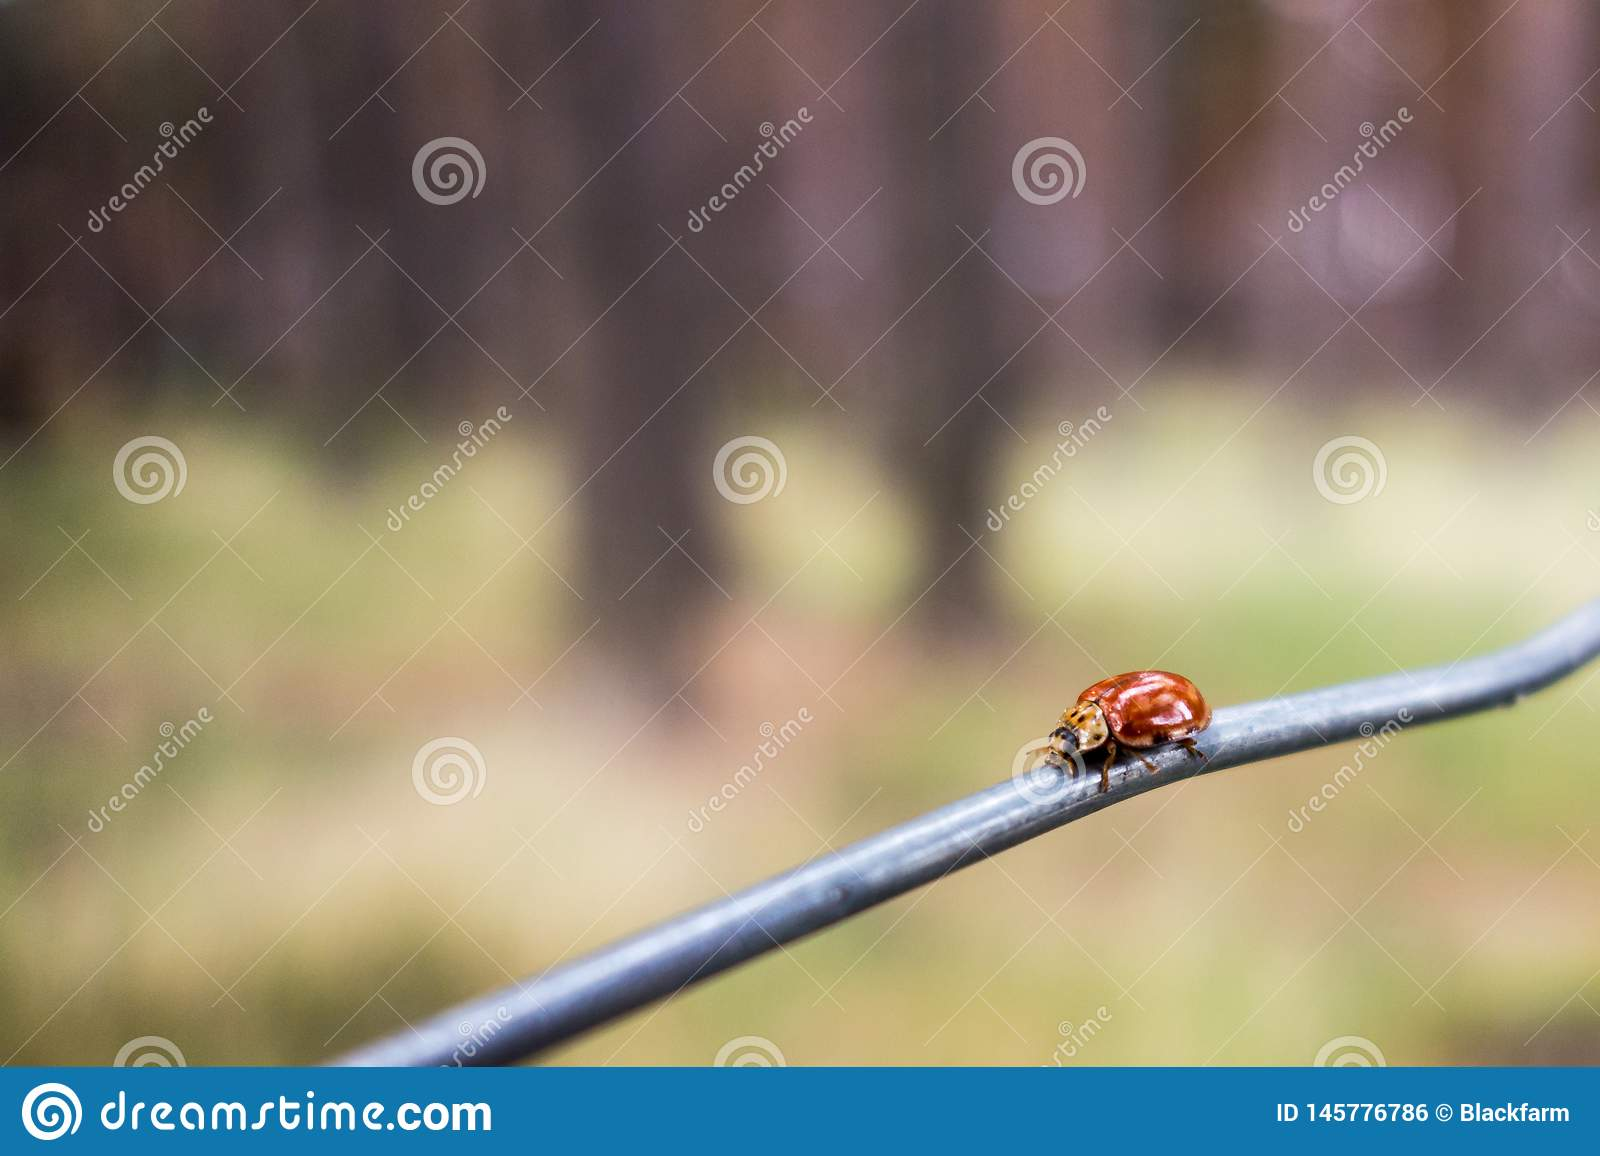 Ladybug over a wire